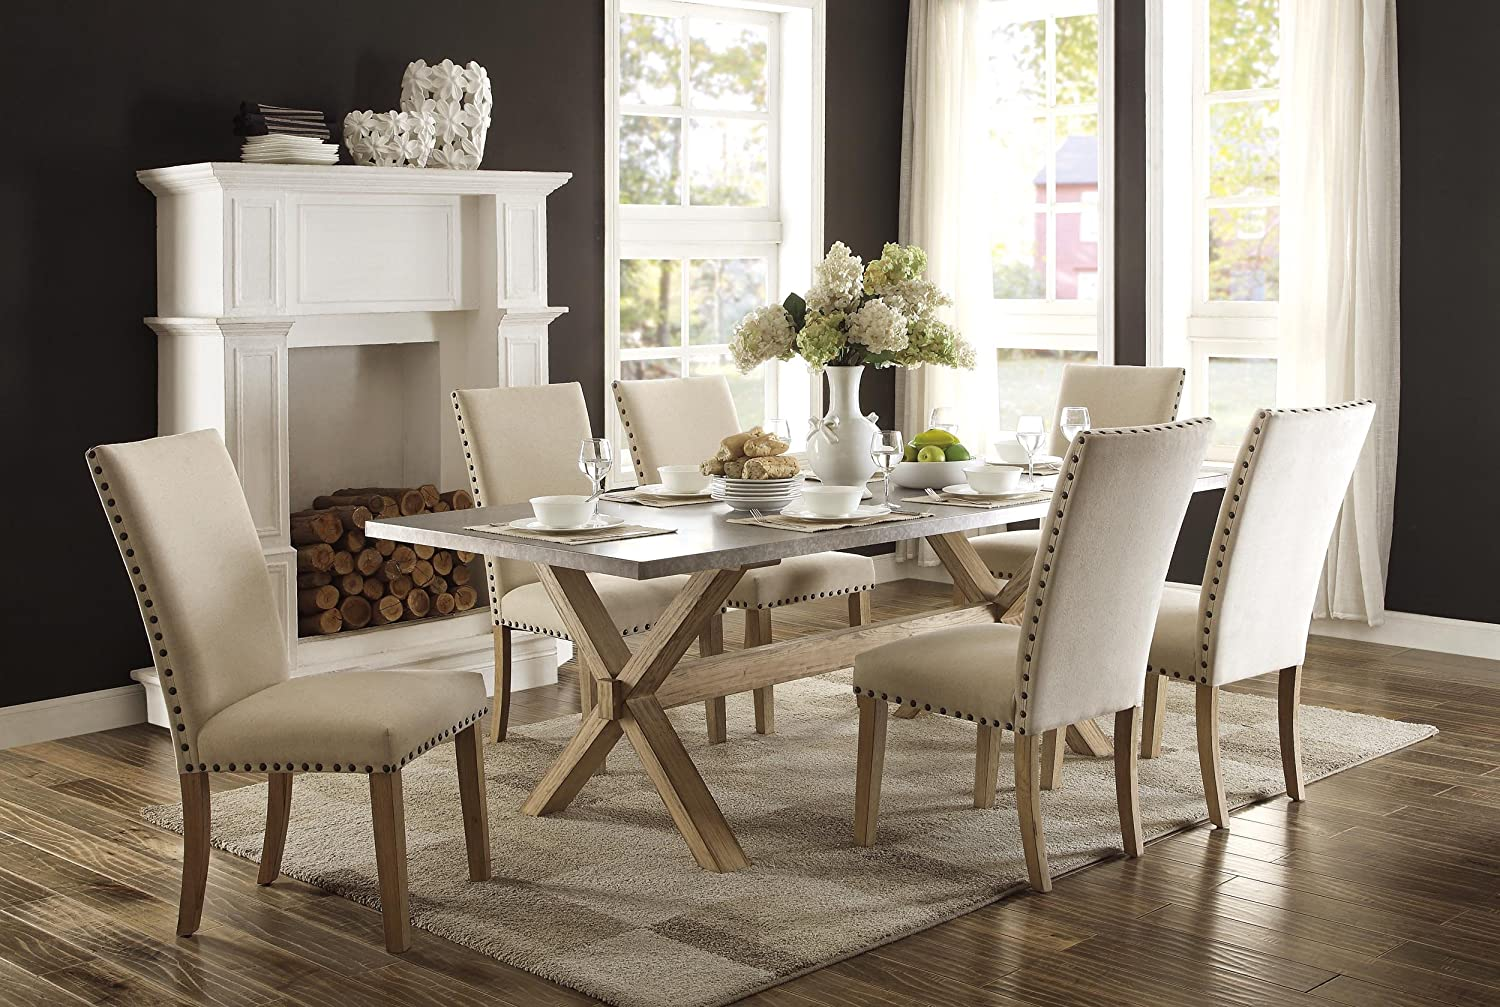 Amazoncom Homelegance Luella 7 Piece Dining Set 84inch Zinc Top